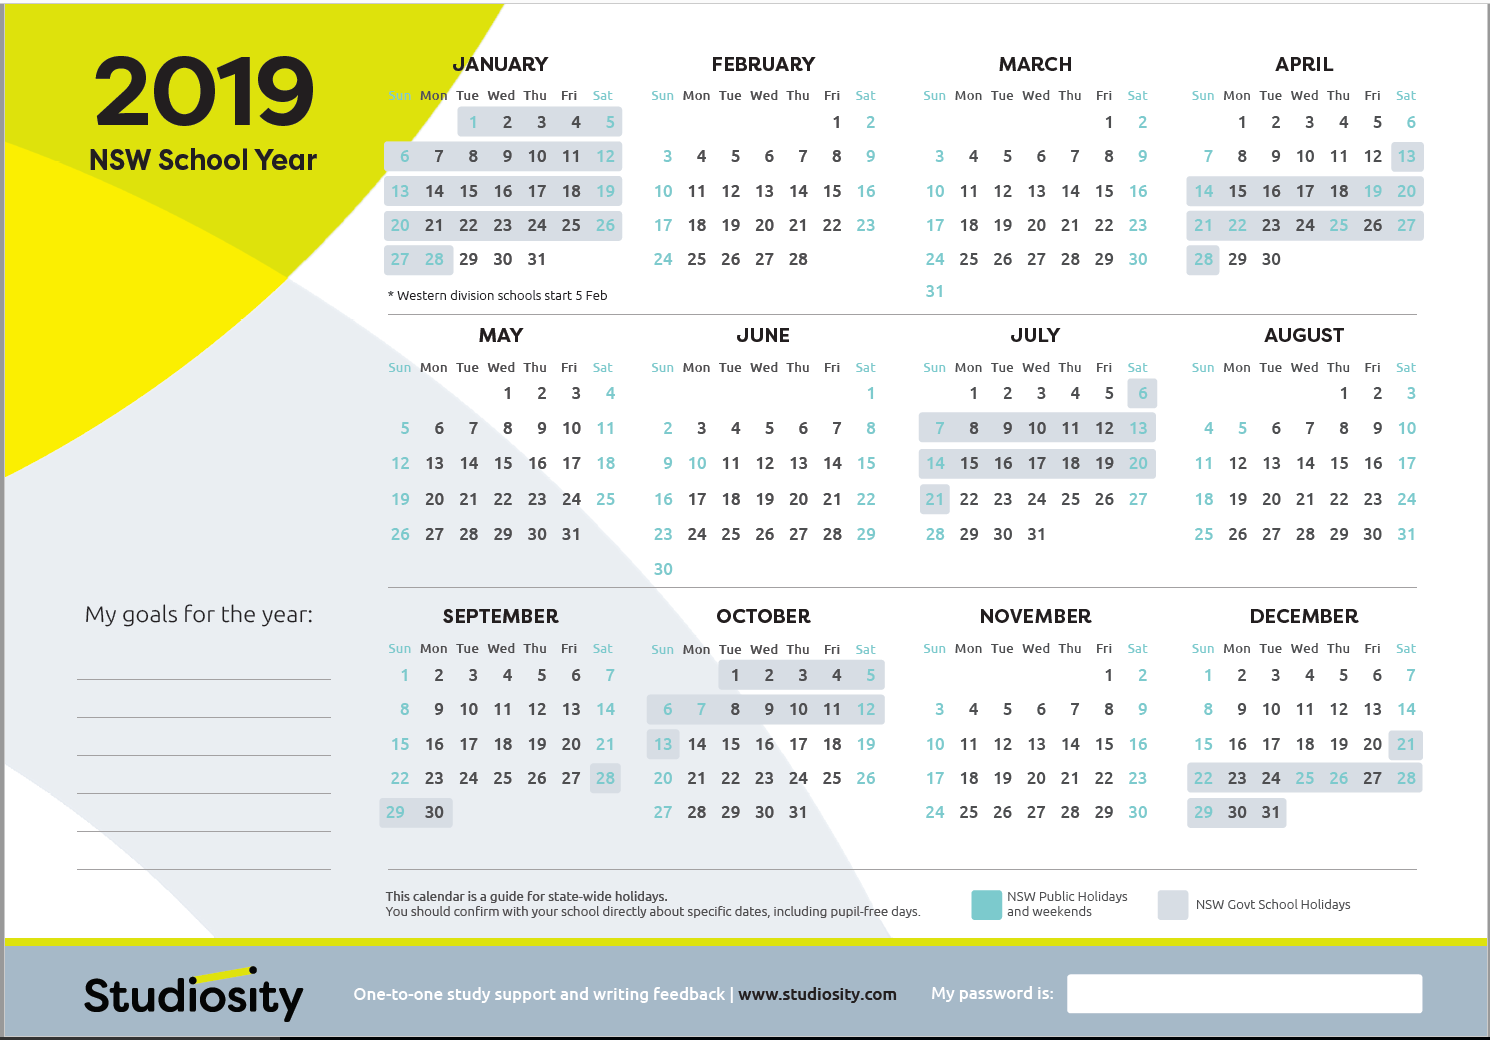 School terms and public holiday dates for ACT in 2019.